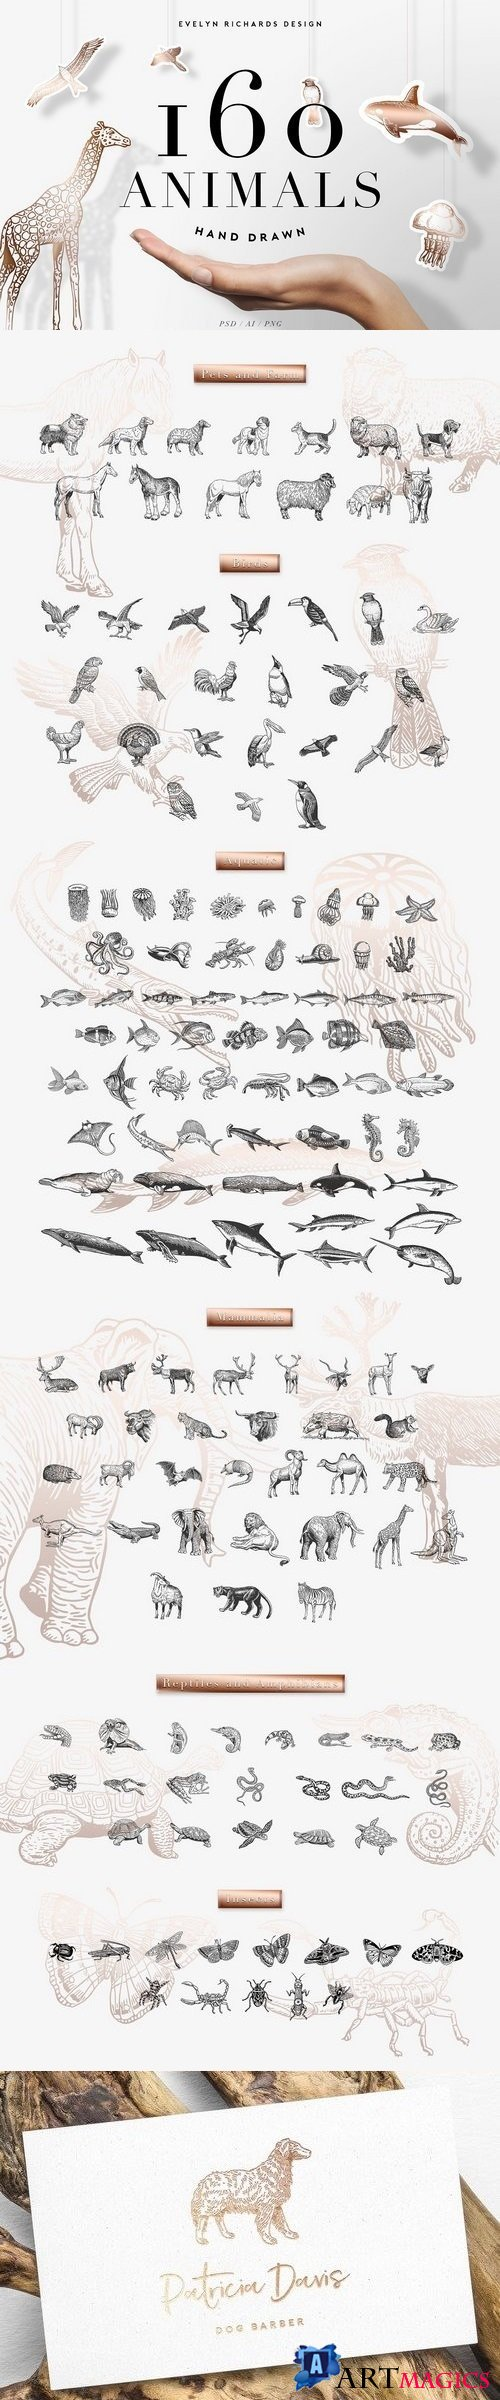 160 Animals - Hand Drawn - 1812147